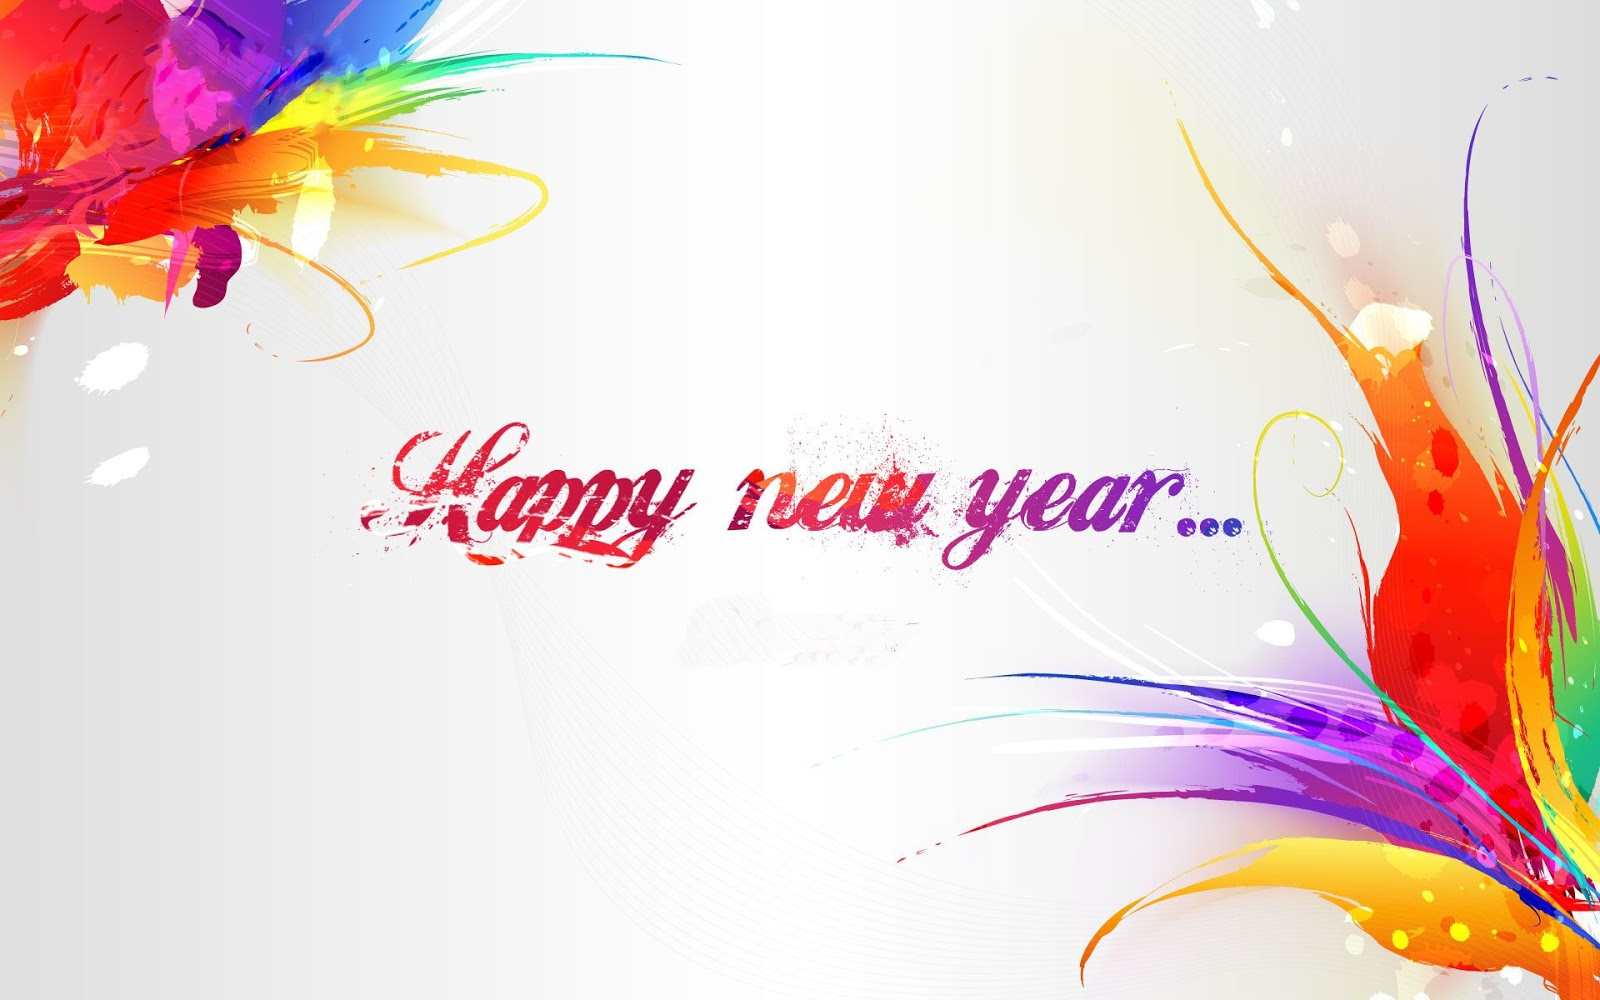 Happy-new-year-2020-quotes-hd-wallpaper